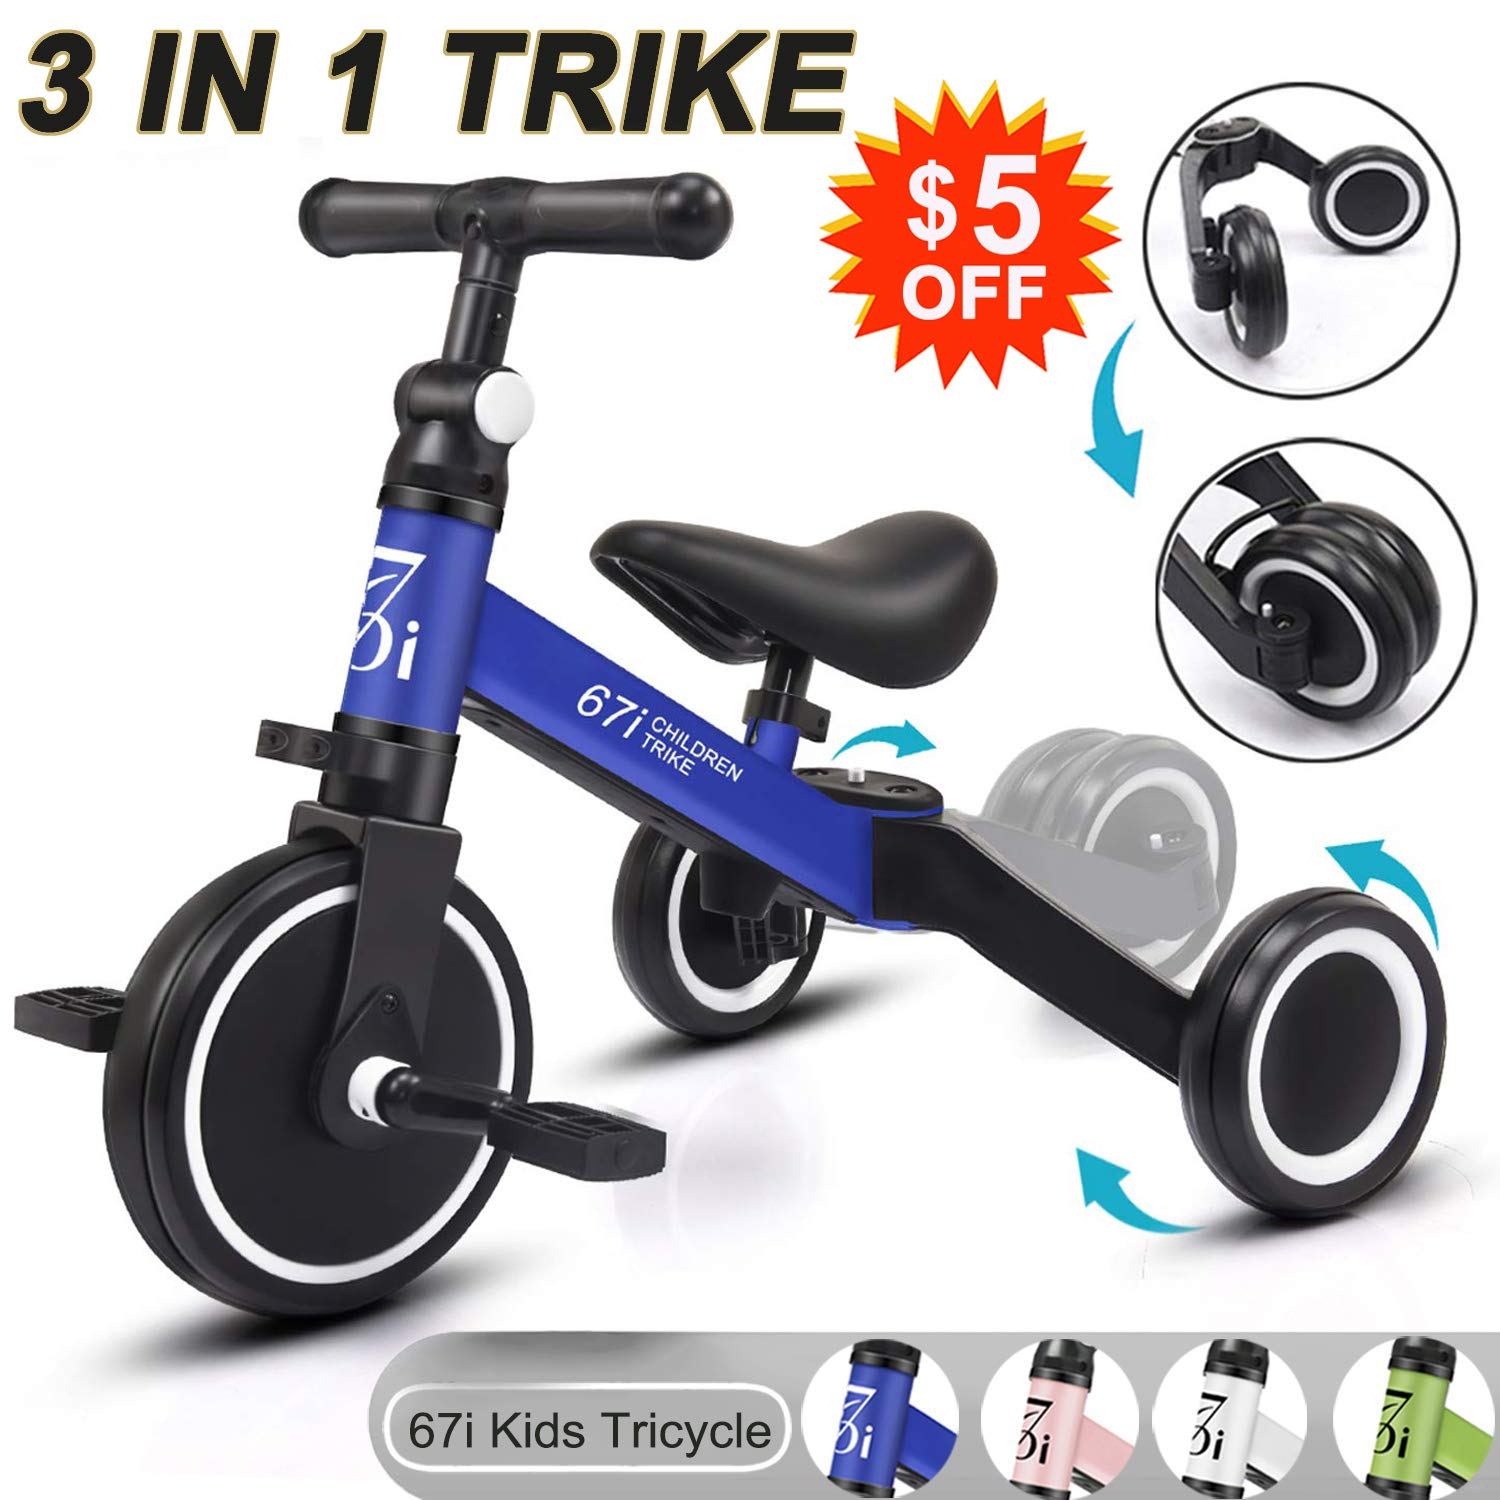 67i Tricycles for 2 Year Olds Toddler Tricycle Kids Trikes Kids Tricycles 3 in 1 for Kids Boys Girls Ages 1-3 Years Old (Blue)